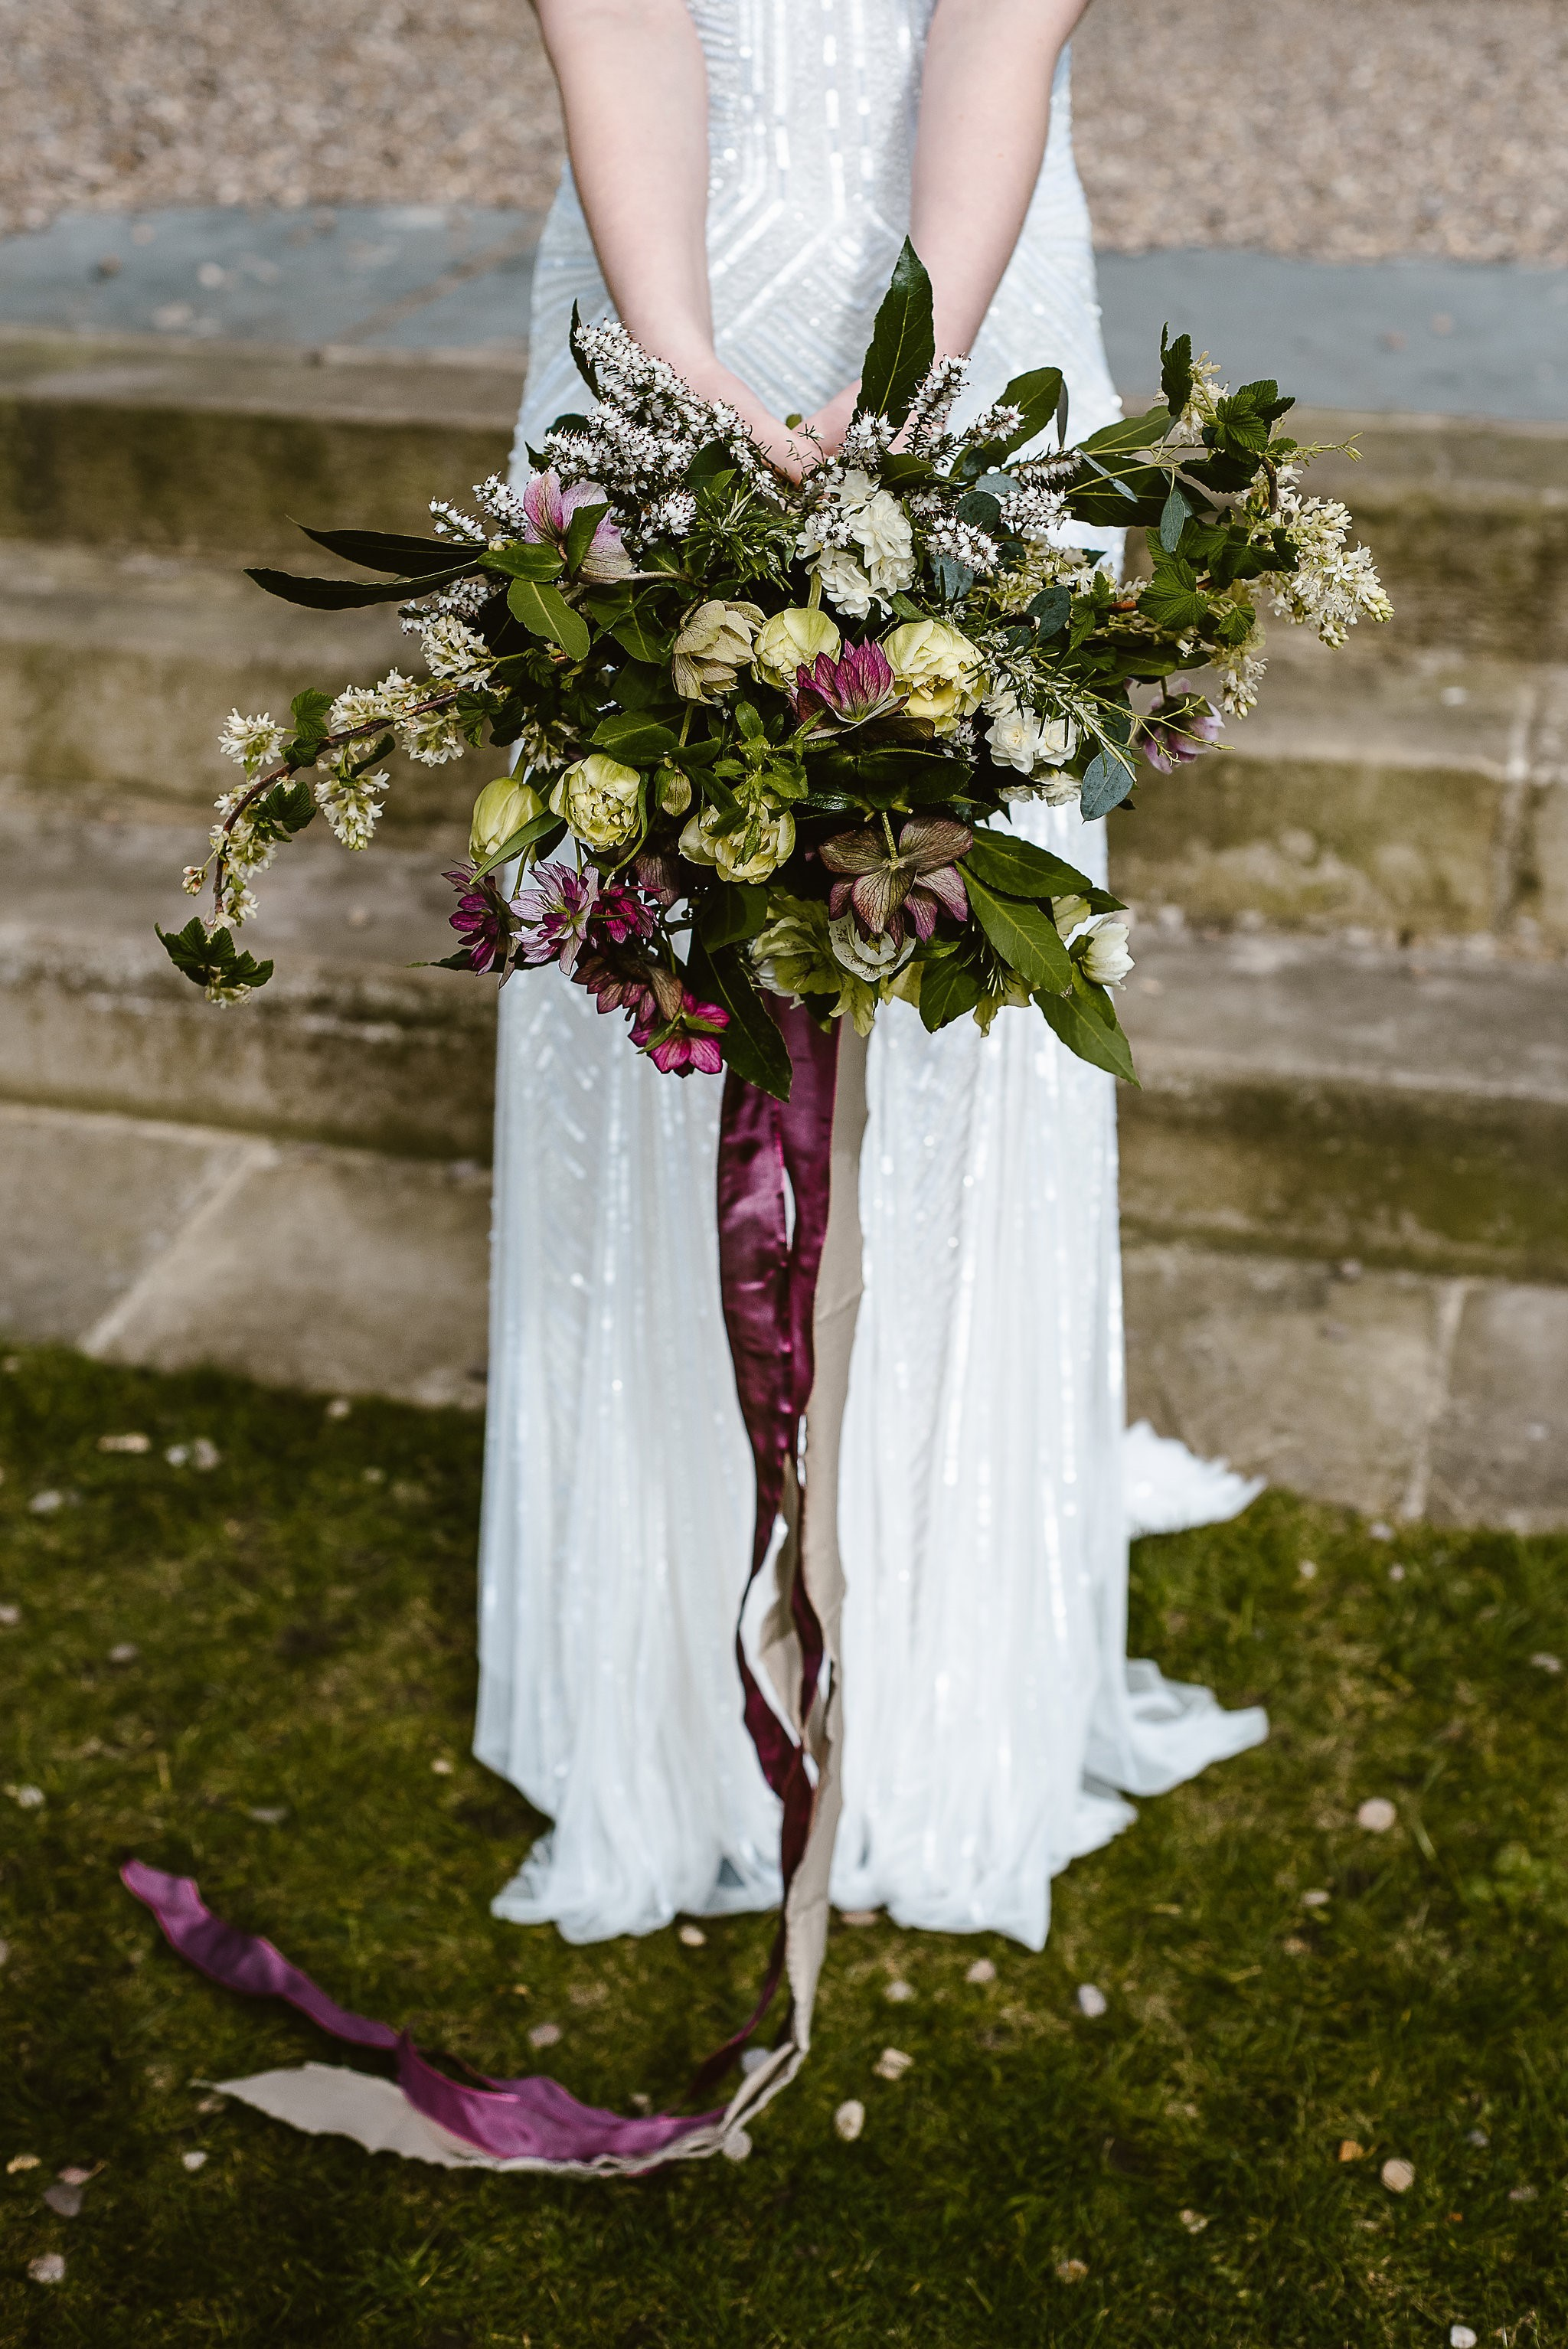 One of Susan Dobson's bridal bouquets inspired by the flowers of the Dales.